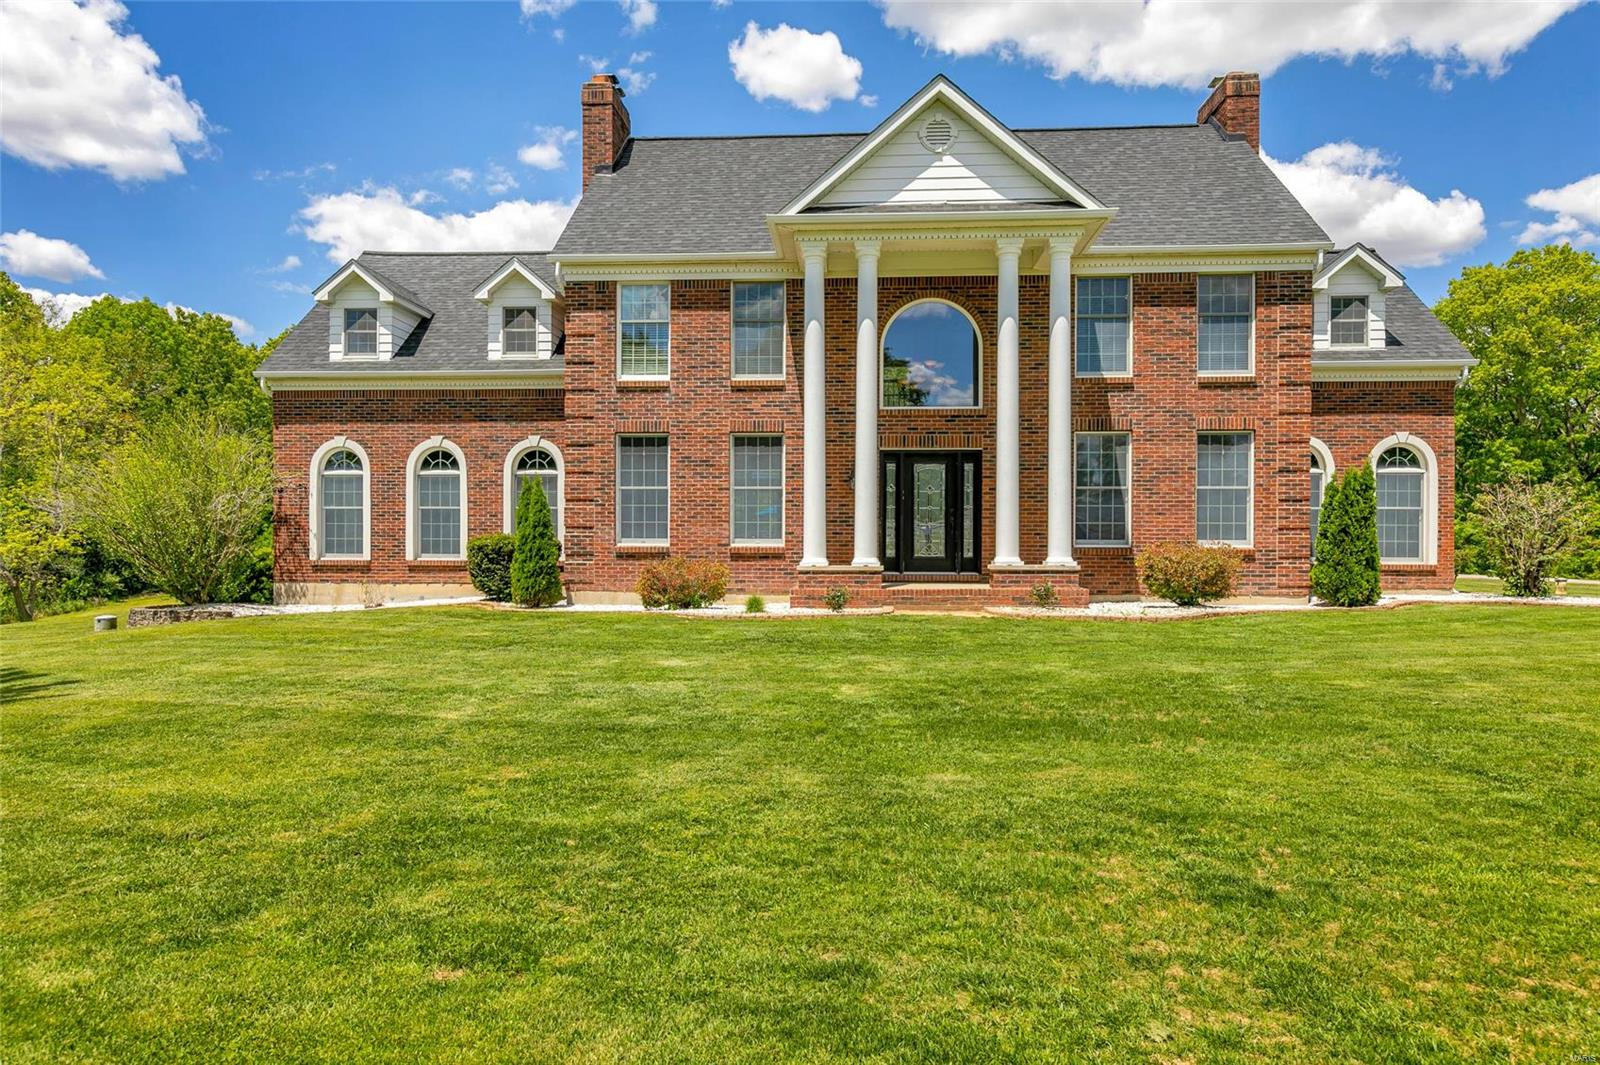 7933 White Tail Circle Property Photo - Waterloo, IL real estate listing